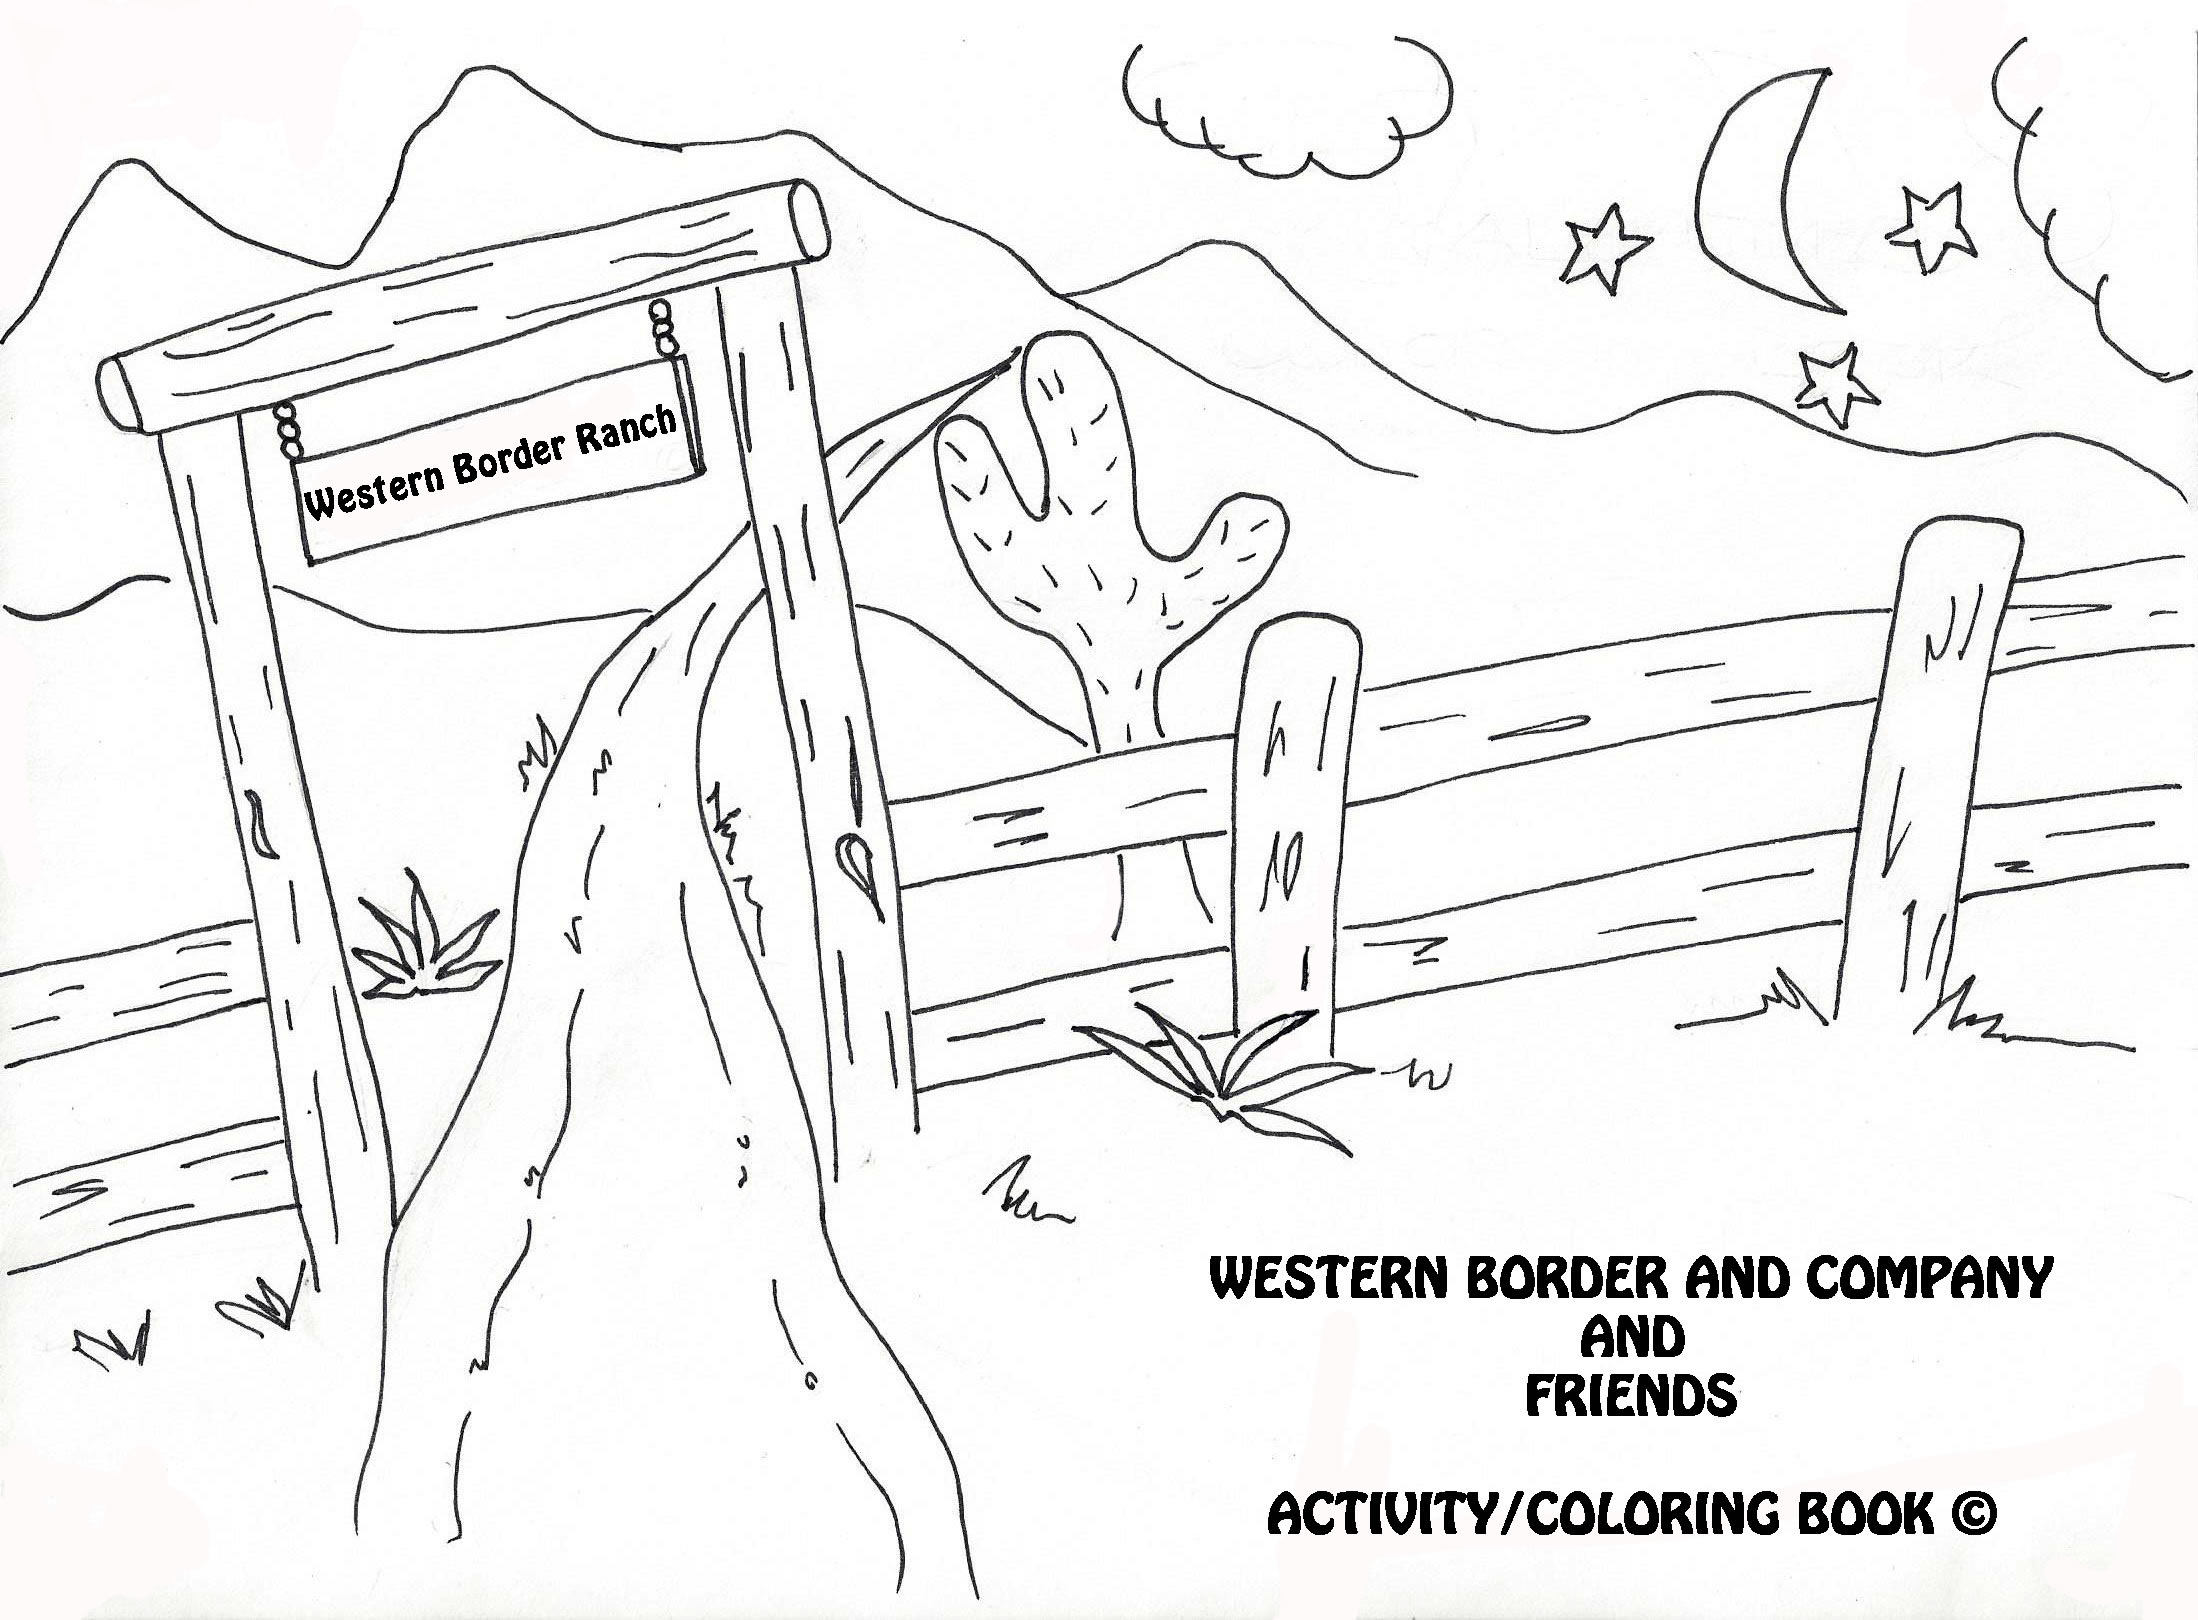 Coloring Pages Western Border and Company